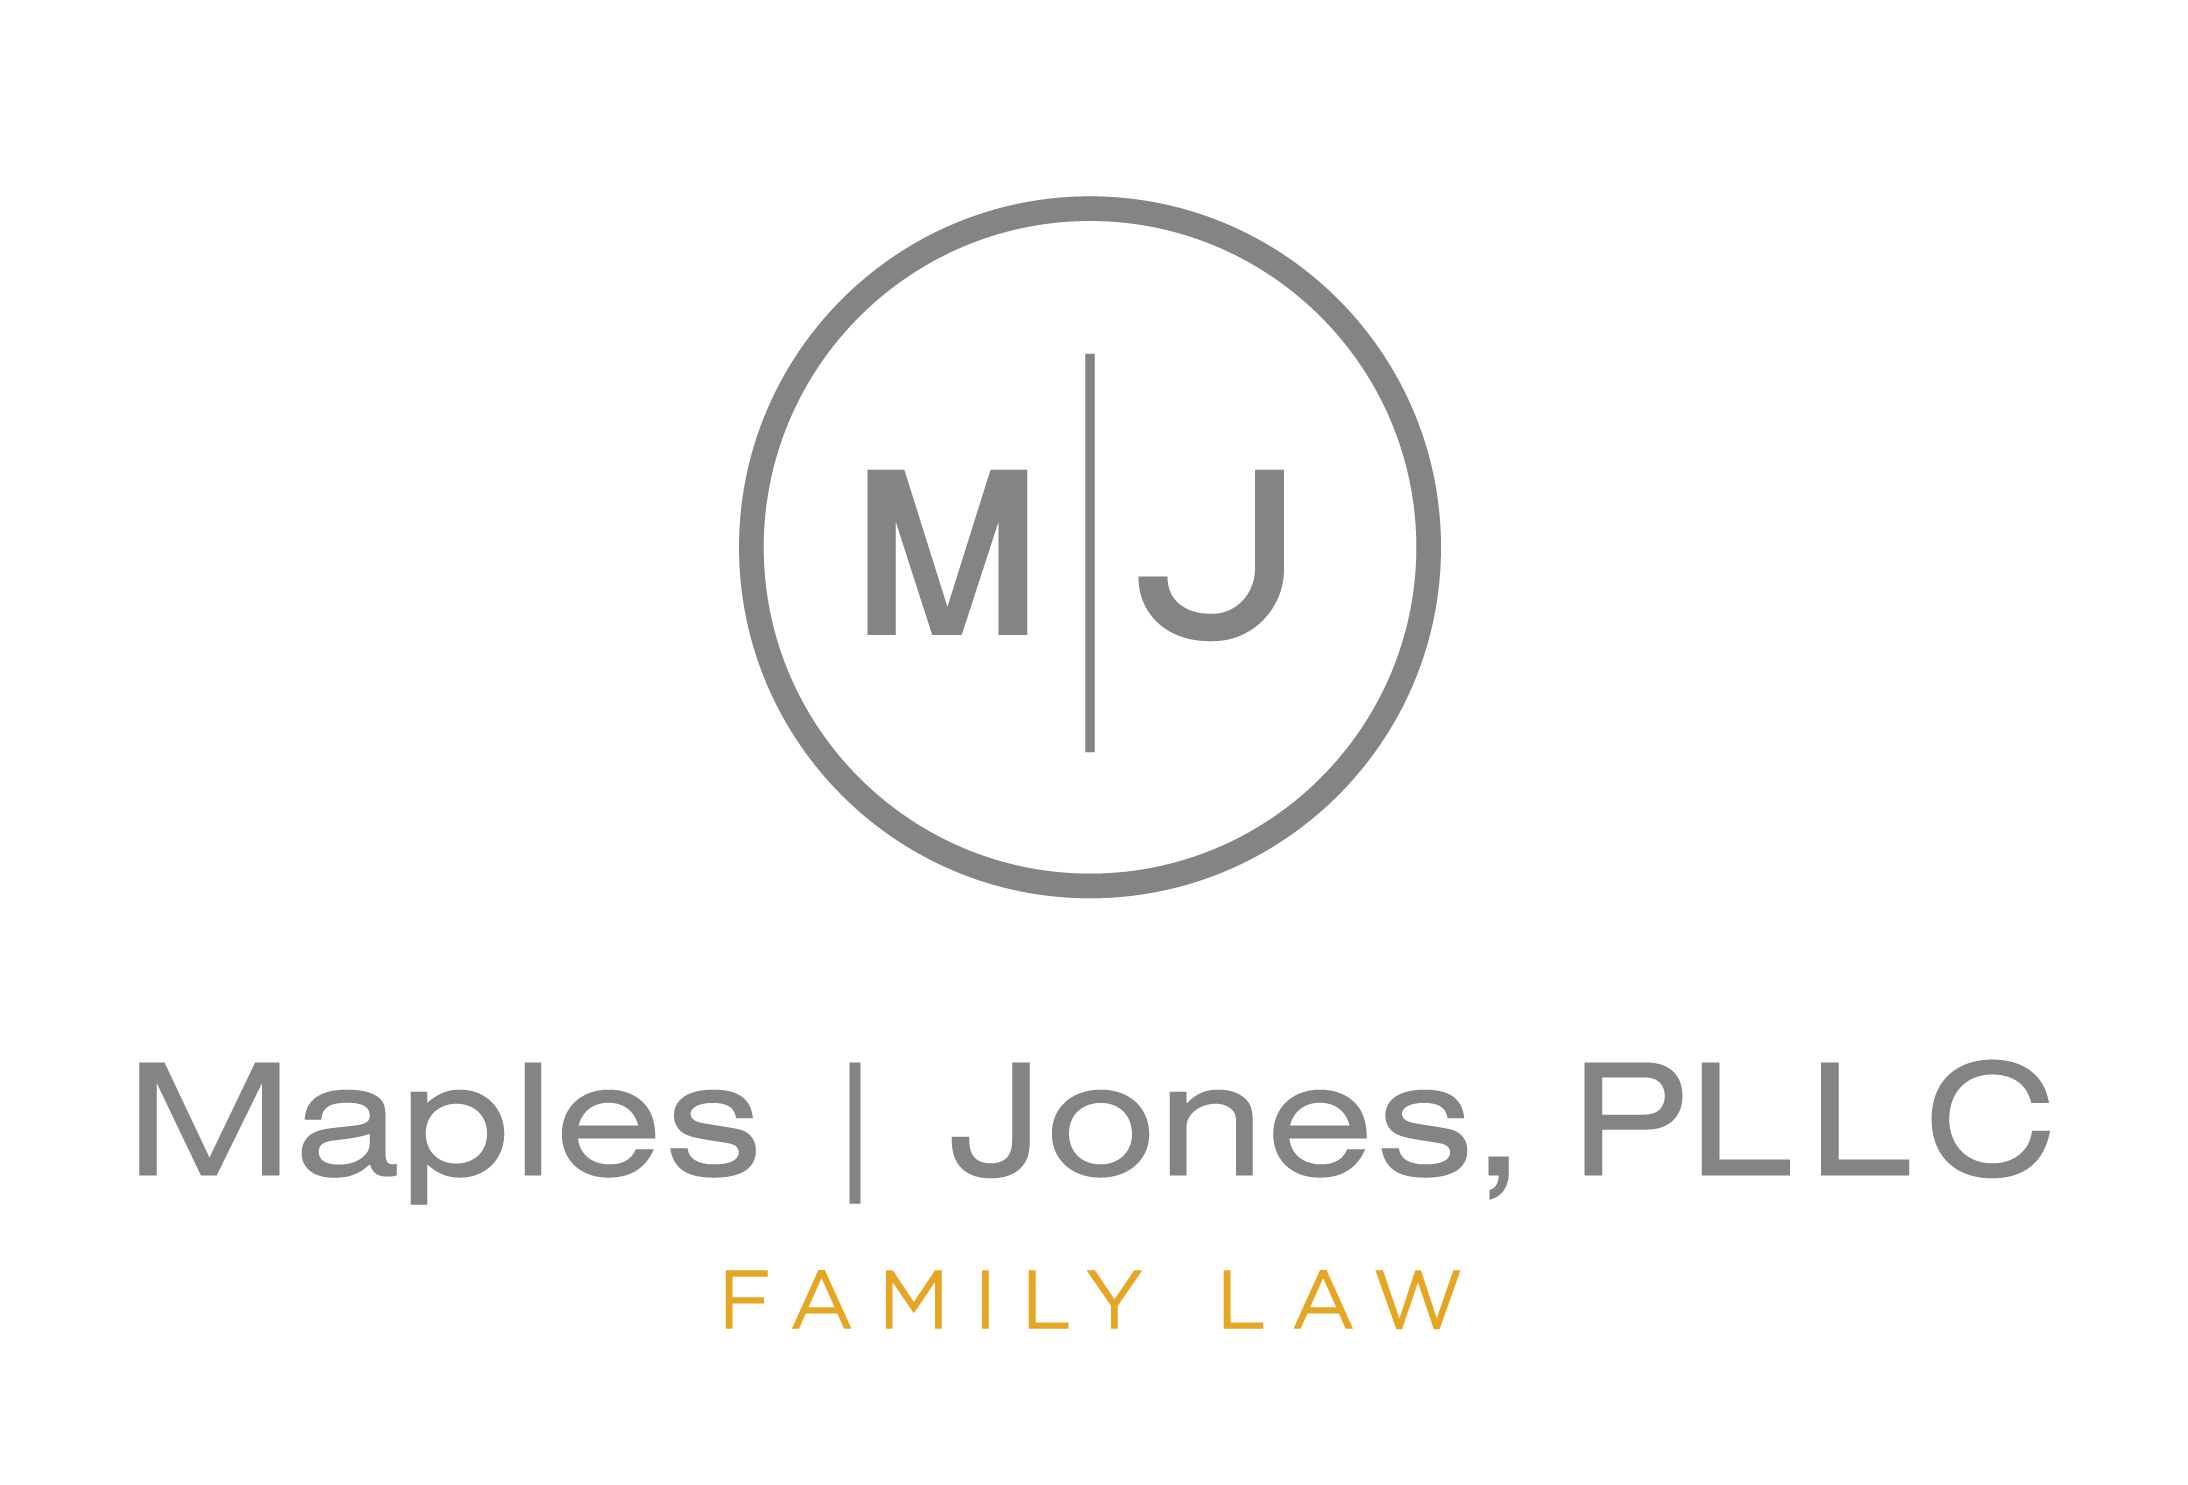 Maples | Jones, PLLC Family Law Logo